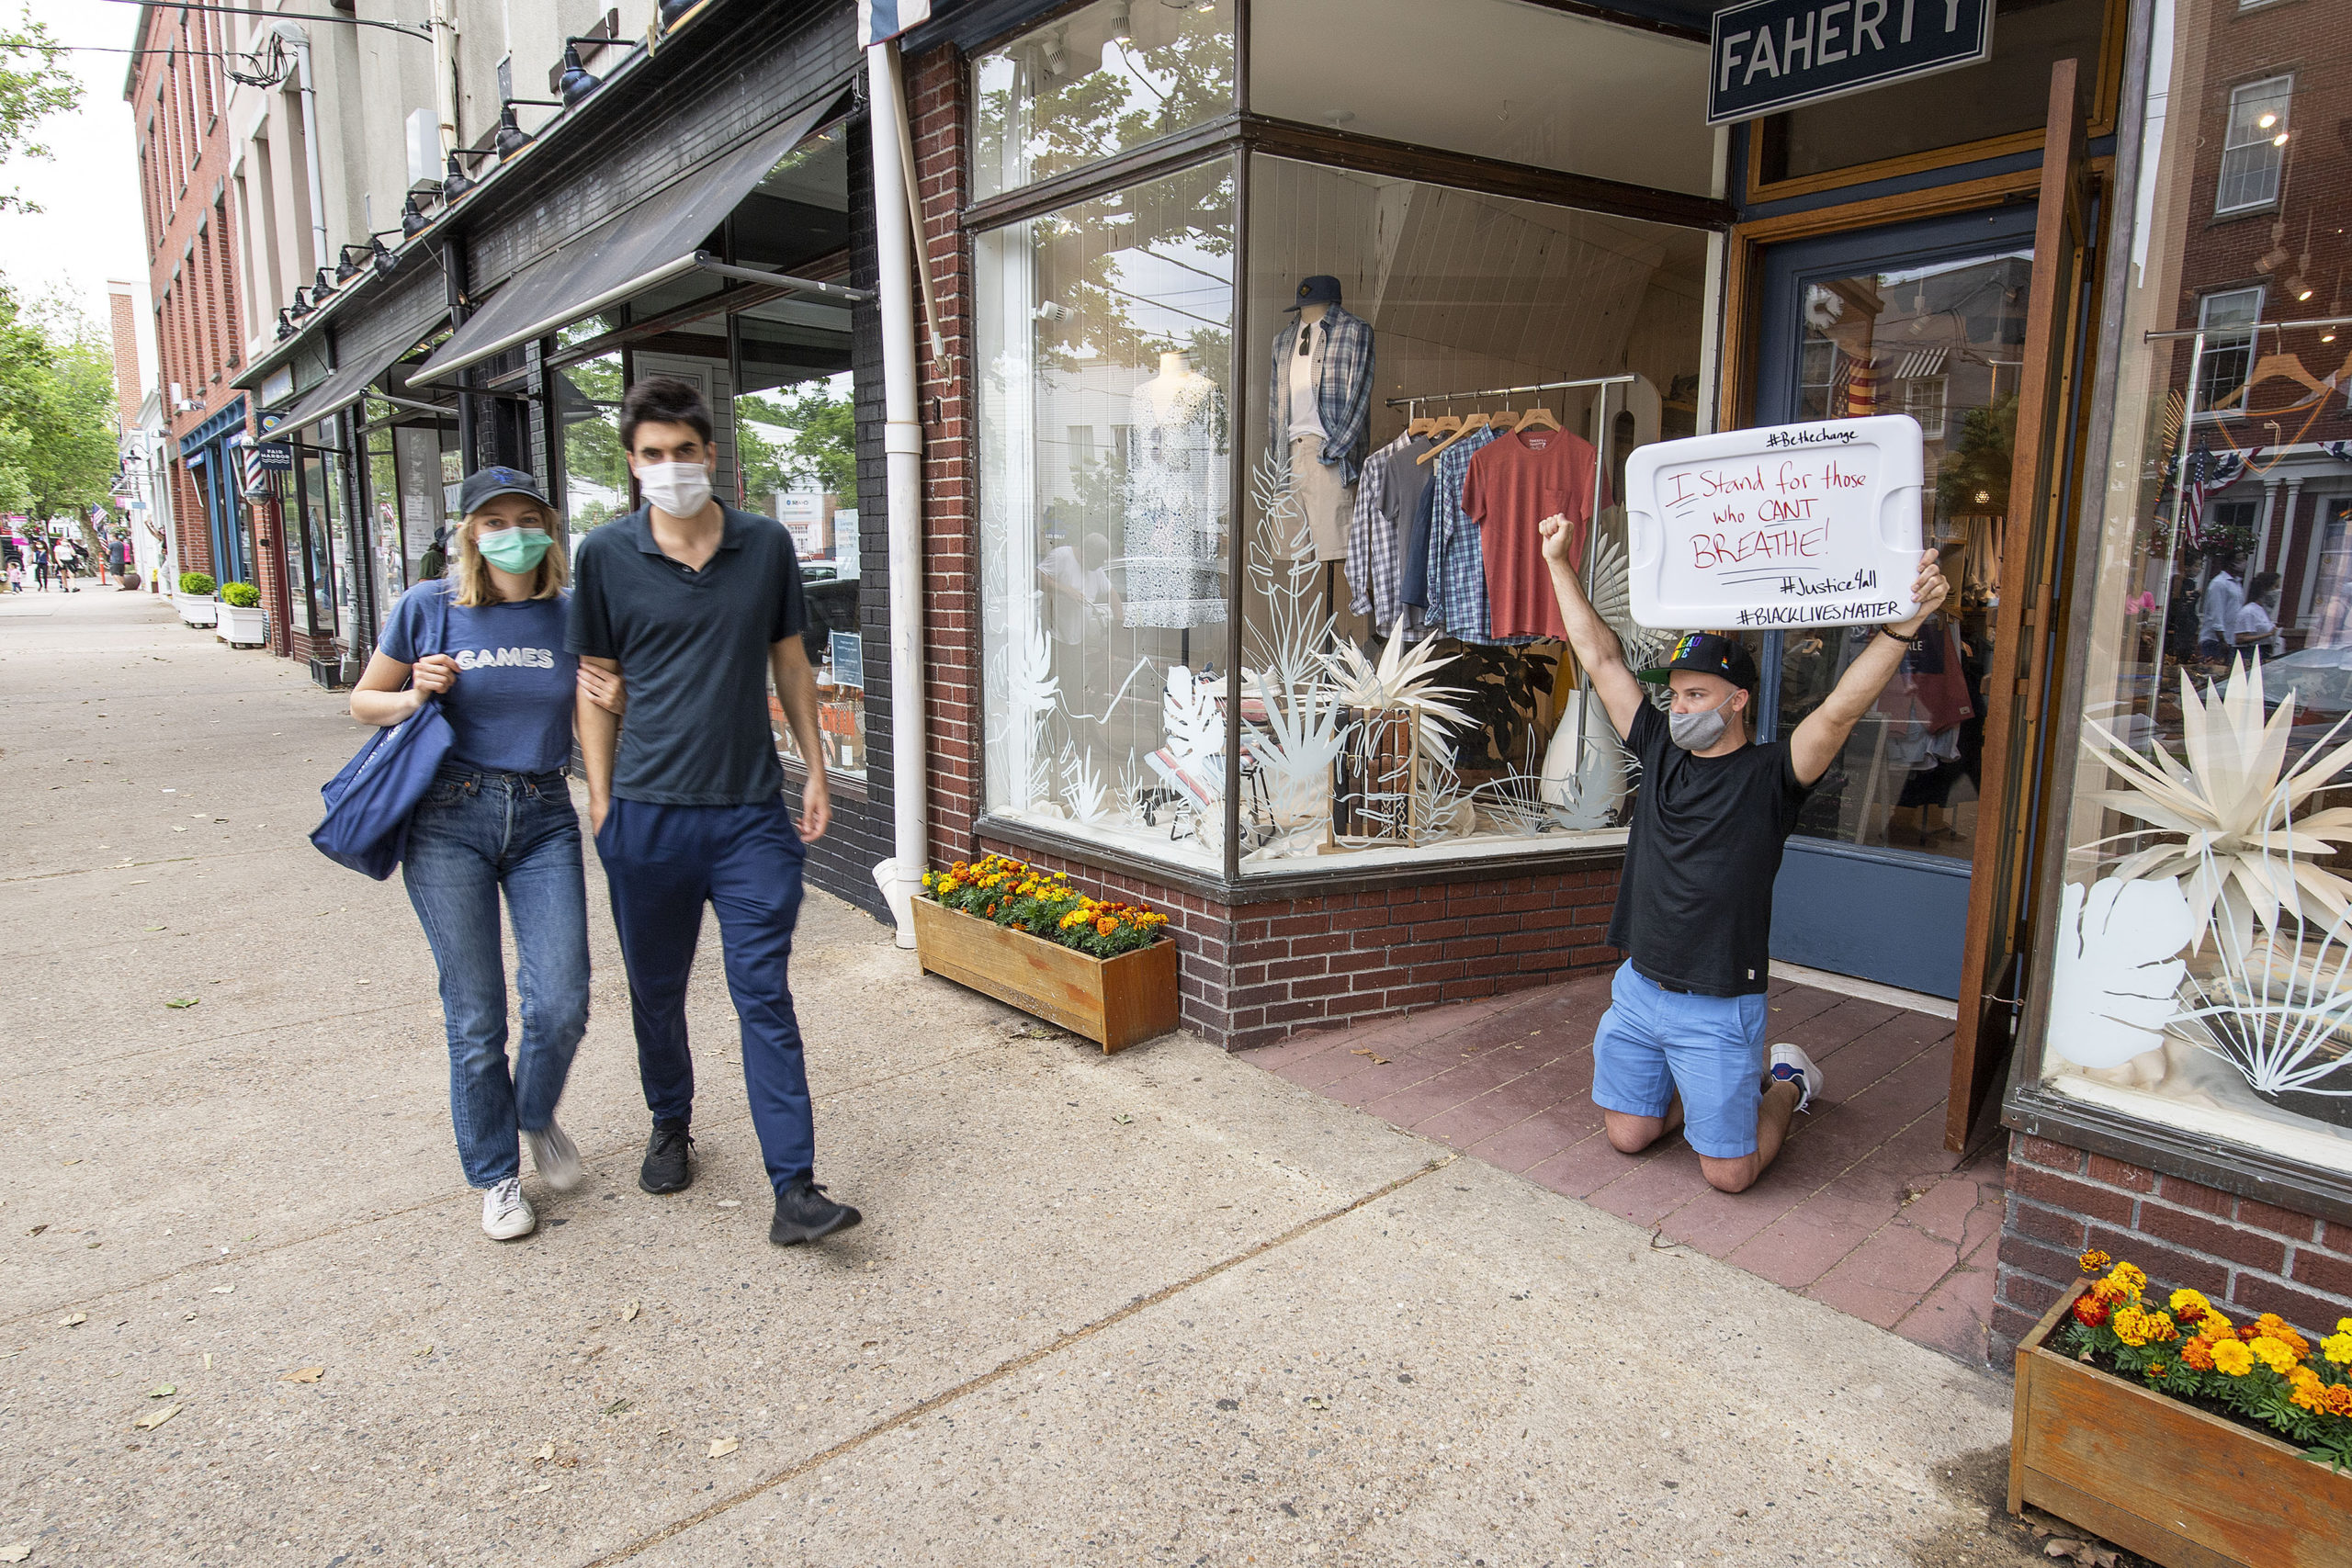 Unable to leave work, Jeremy Impelliveri makes his voice heard from the doorway of the Faherty store as marchers make their way down Main Street during a Black Lives Matter protest rally held in Steinbeck Park on Friday afternoon.    MICHAEL HELLER